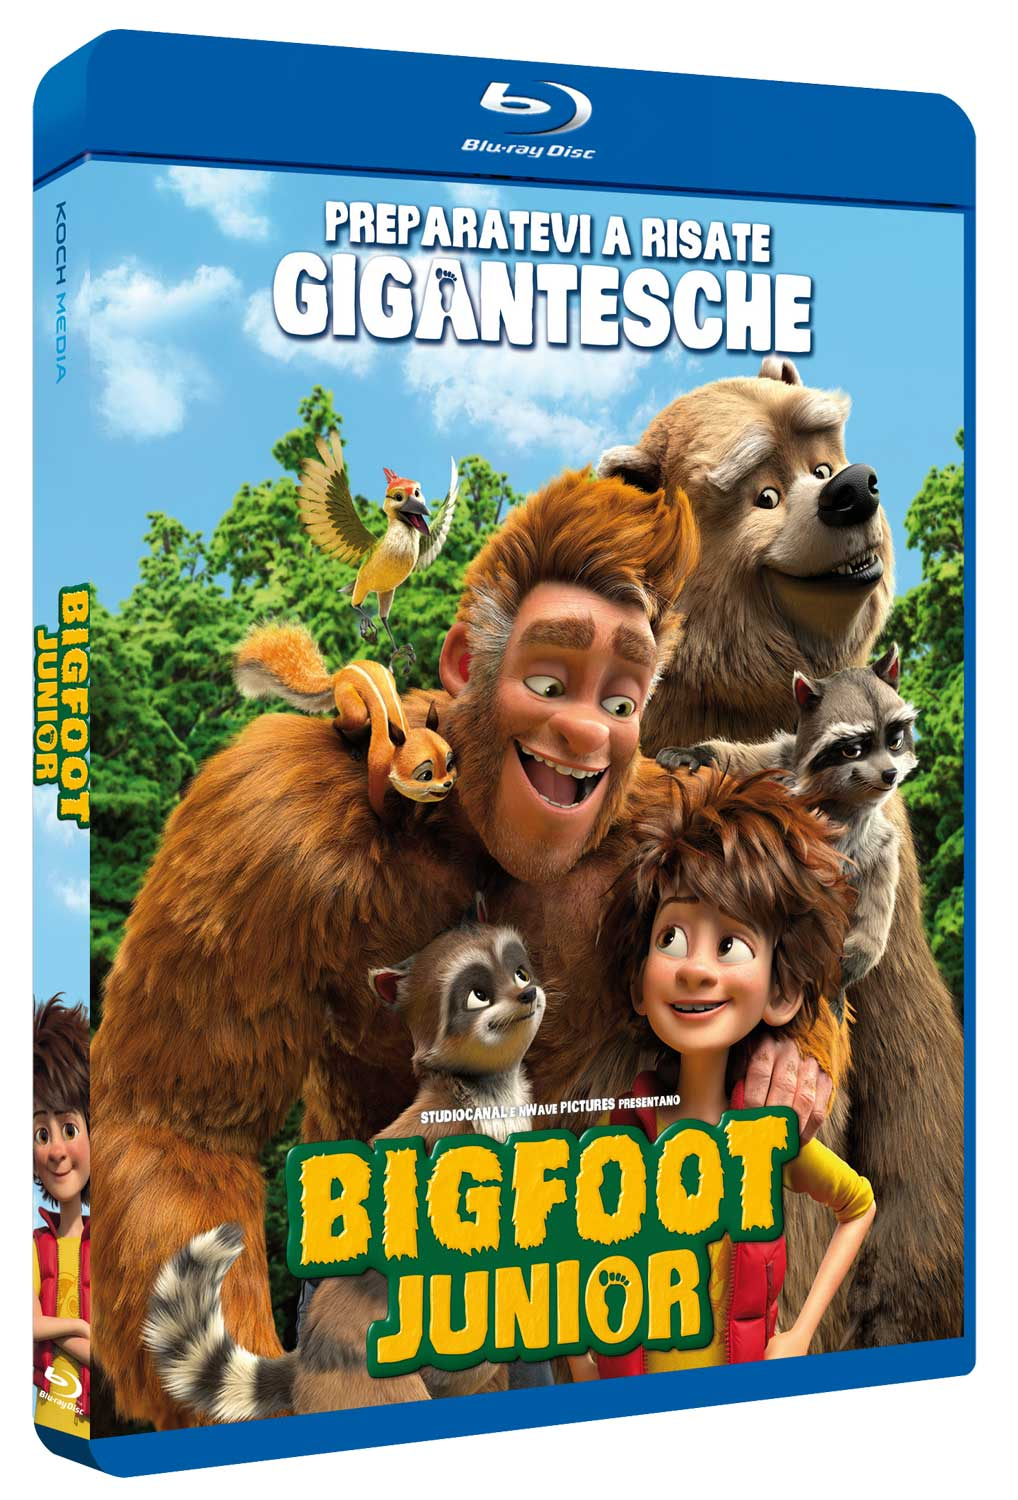 BIGFOOT JUNIOR - BLU RAY